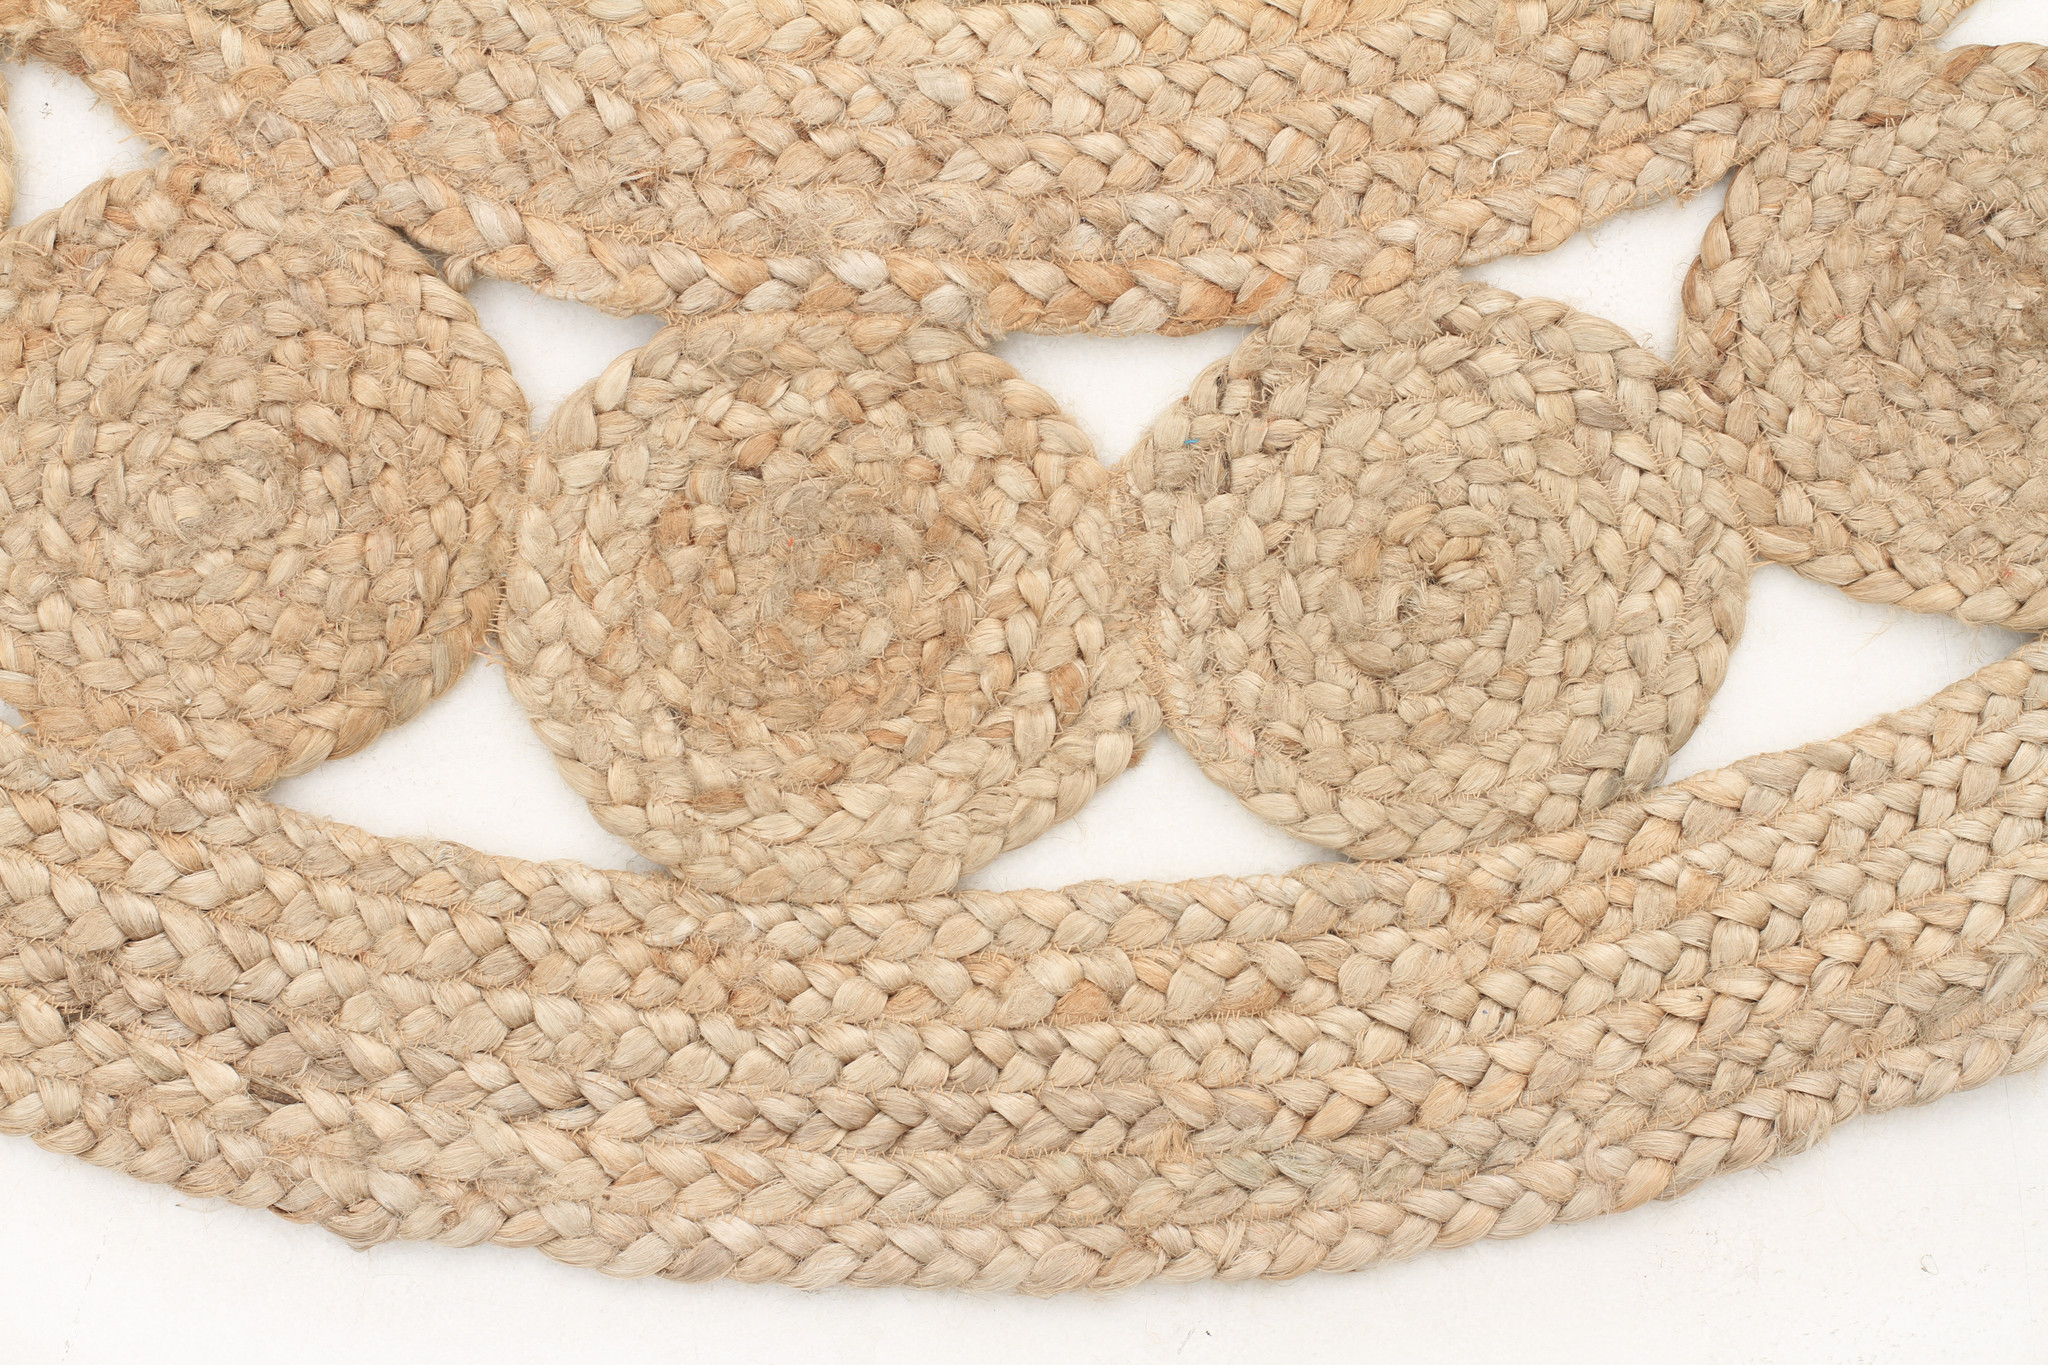 Beautiful Atrium Round Pilu Jute Rug Natural Out Of The Cot